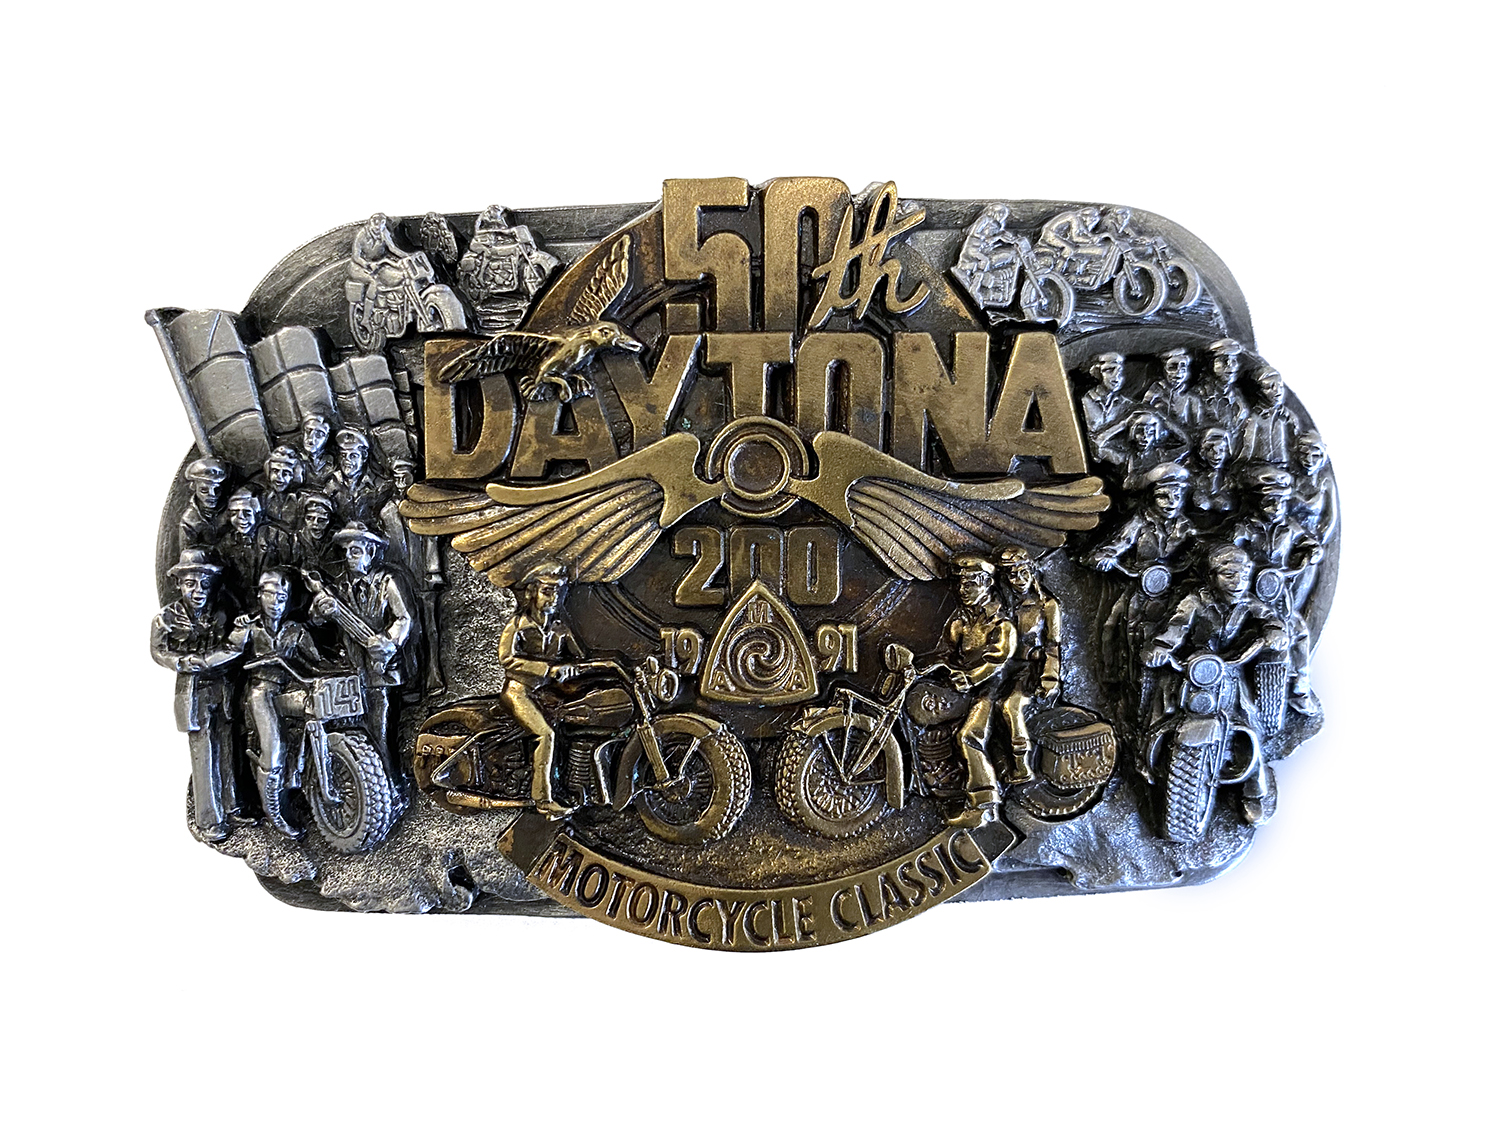 50th Daytona 200 Motorcycle Classic Belt Buckle